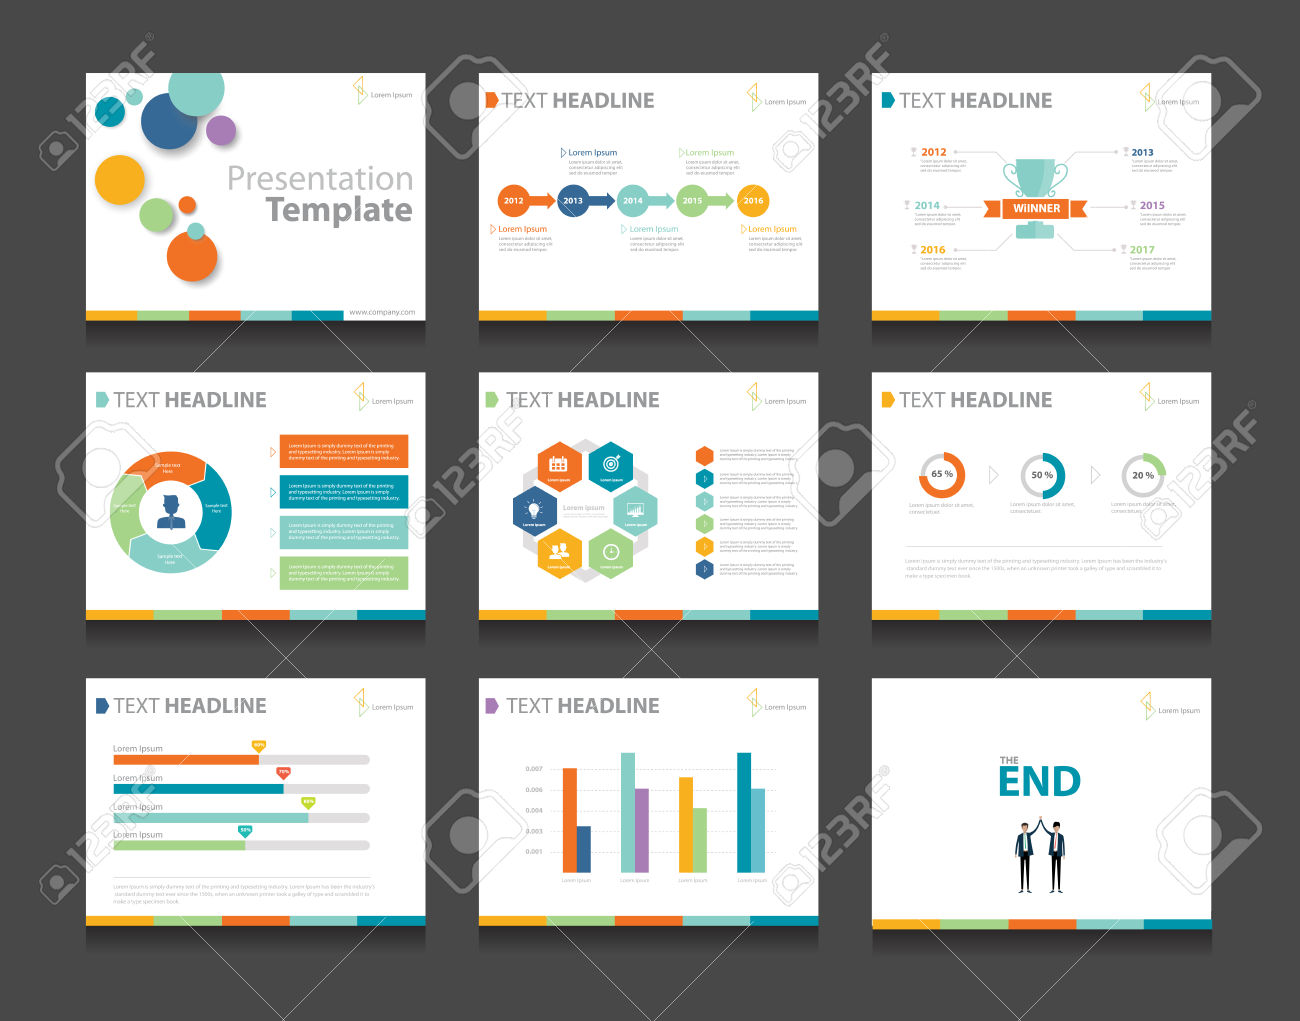 Basic tasks for creating a PowerPoint presentation